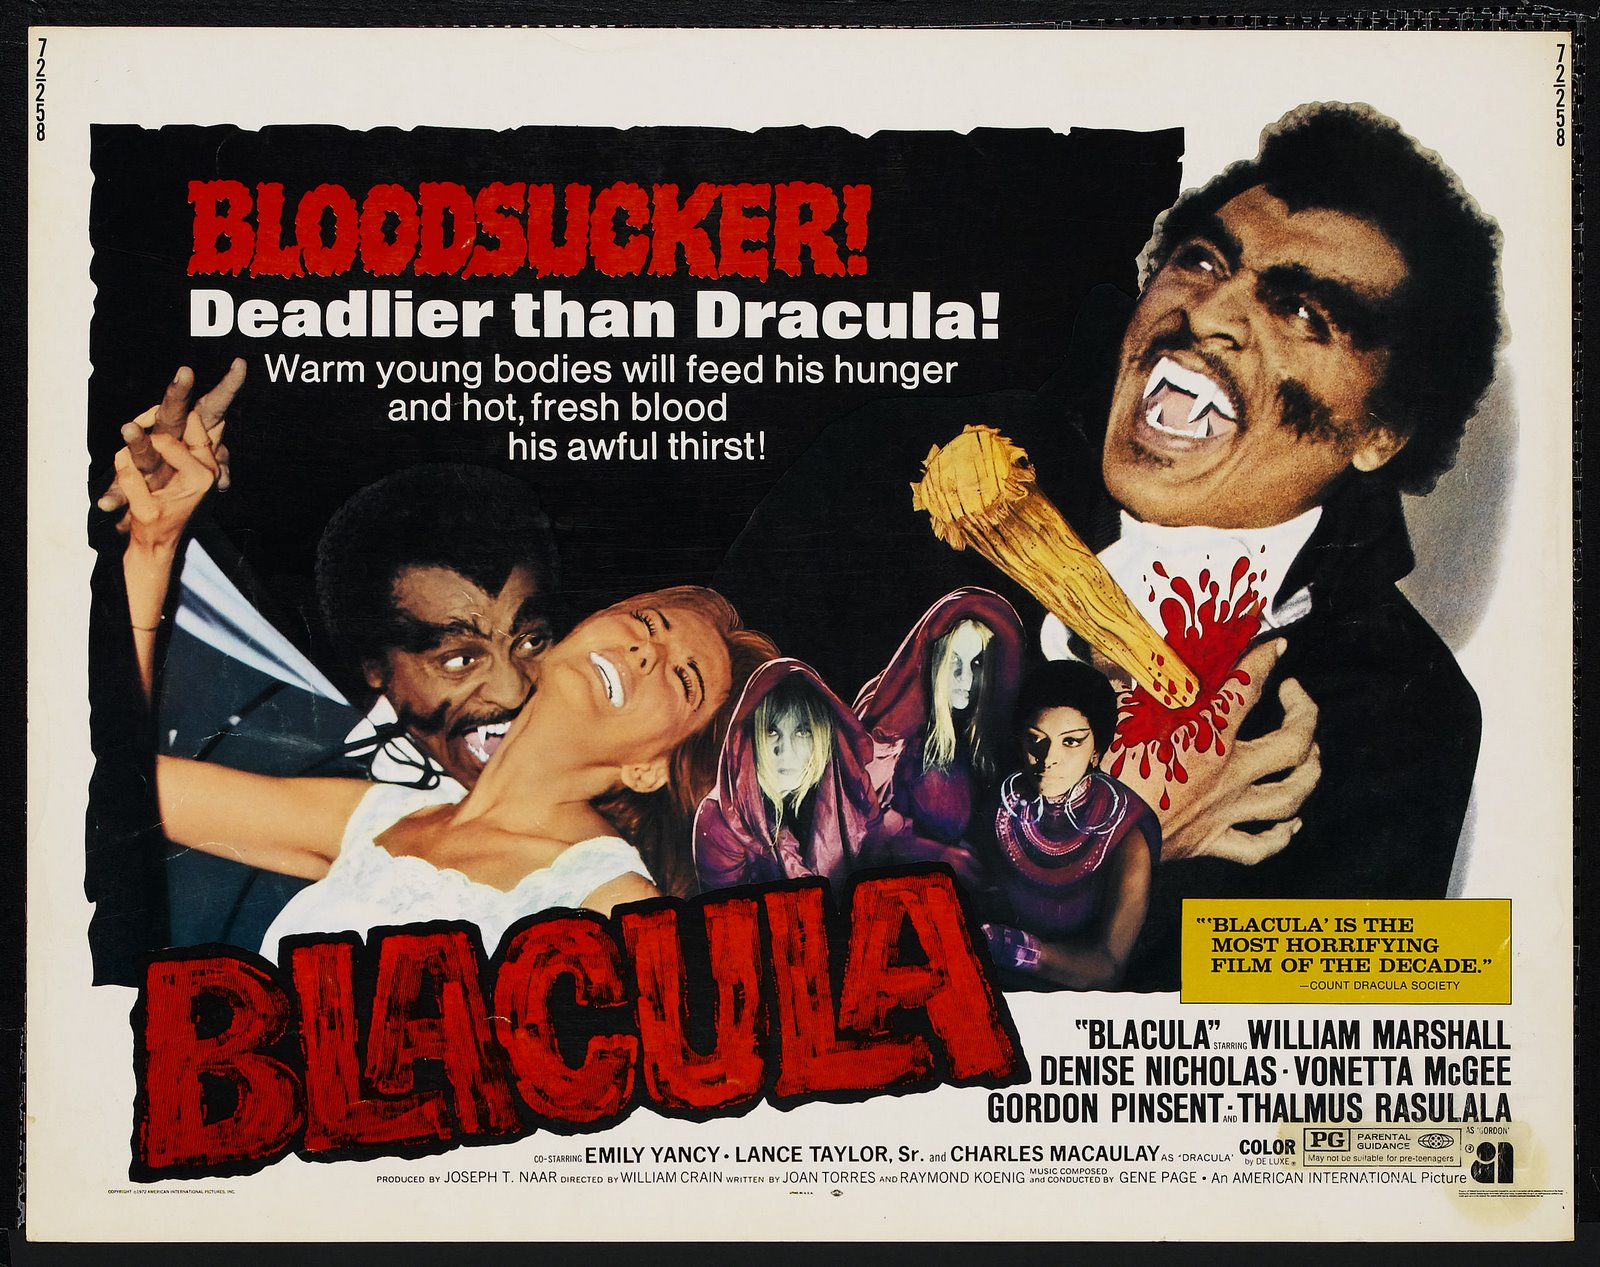 http://www.vampirebeauties.com/2013/02/the-brides-of-blacula.html